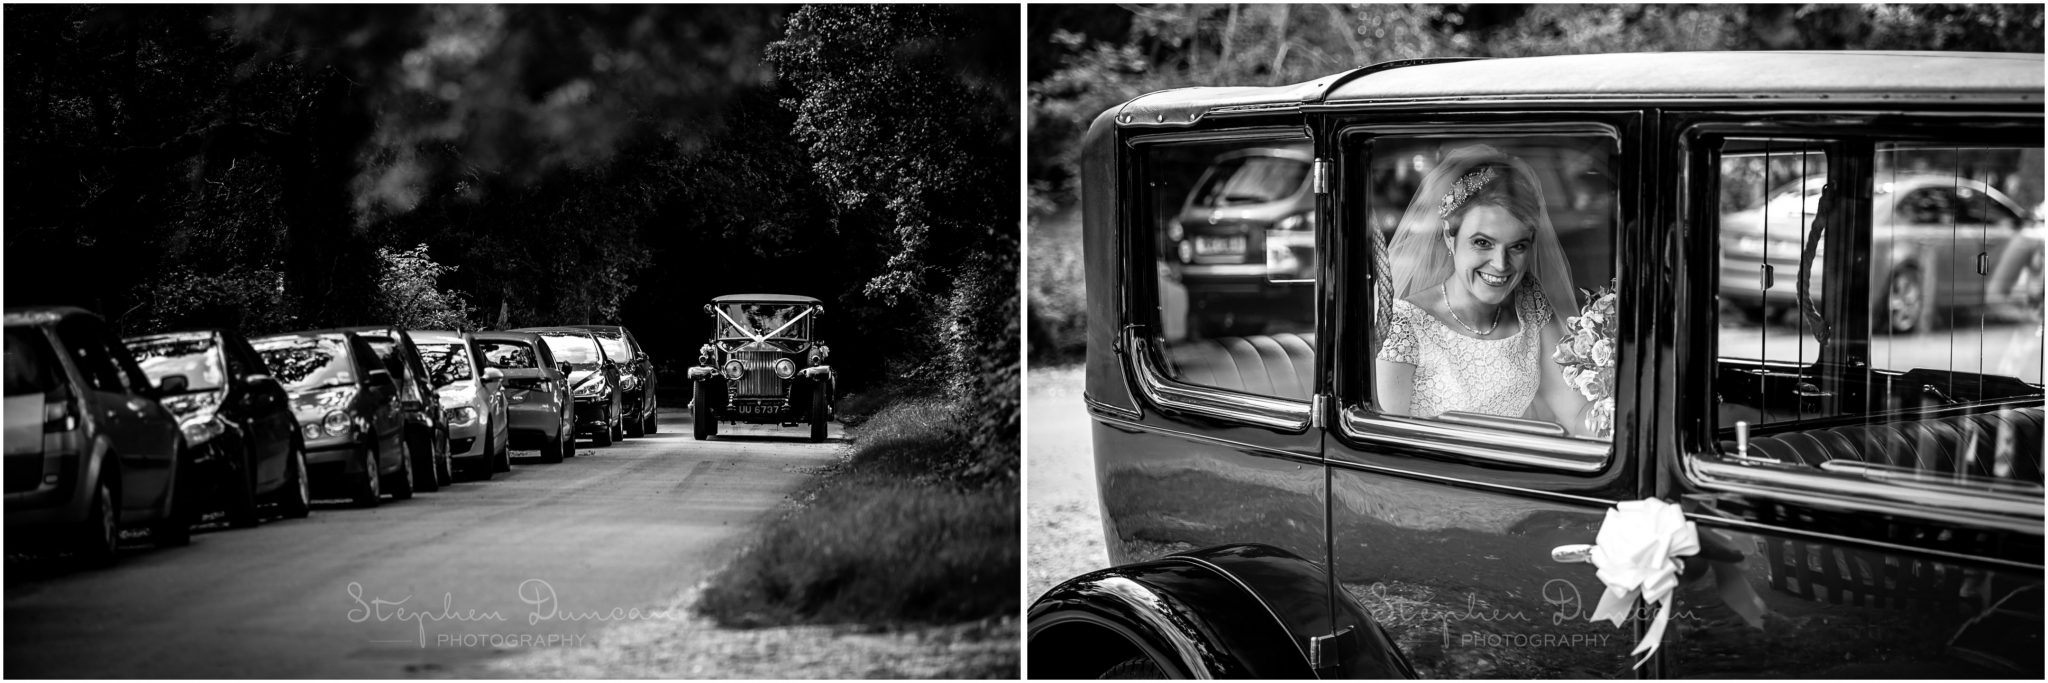 Lymington wedding photography black and white photos of wedding car with bride